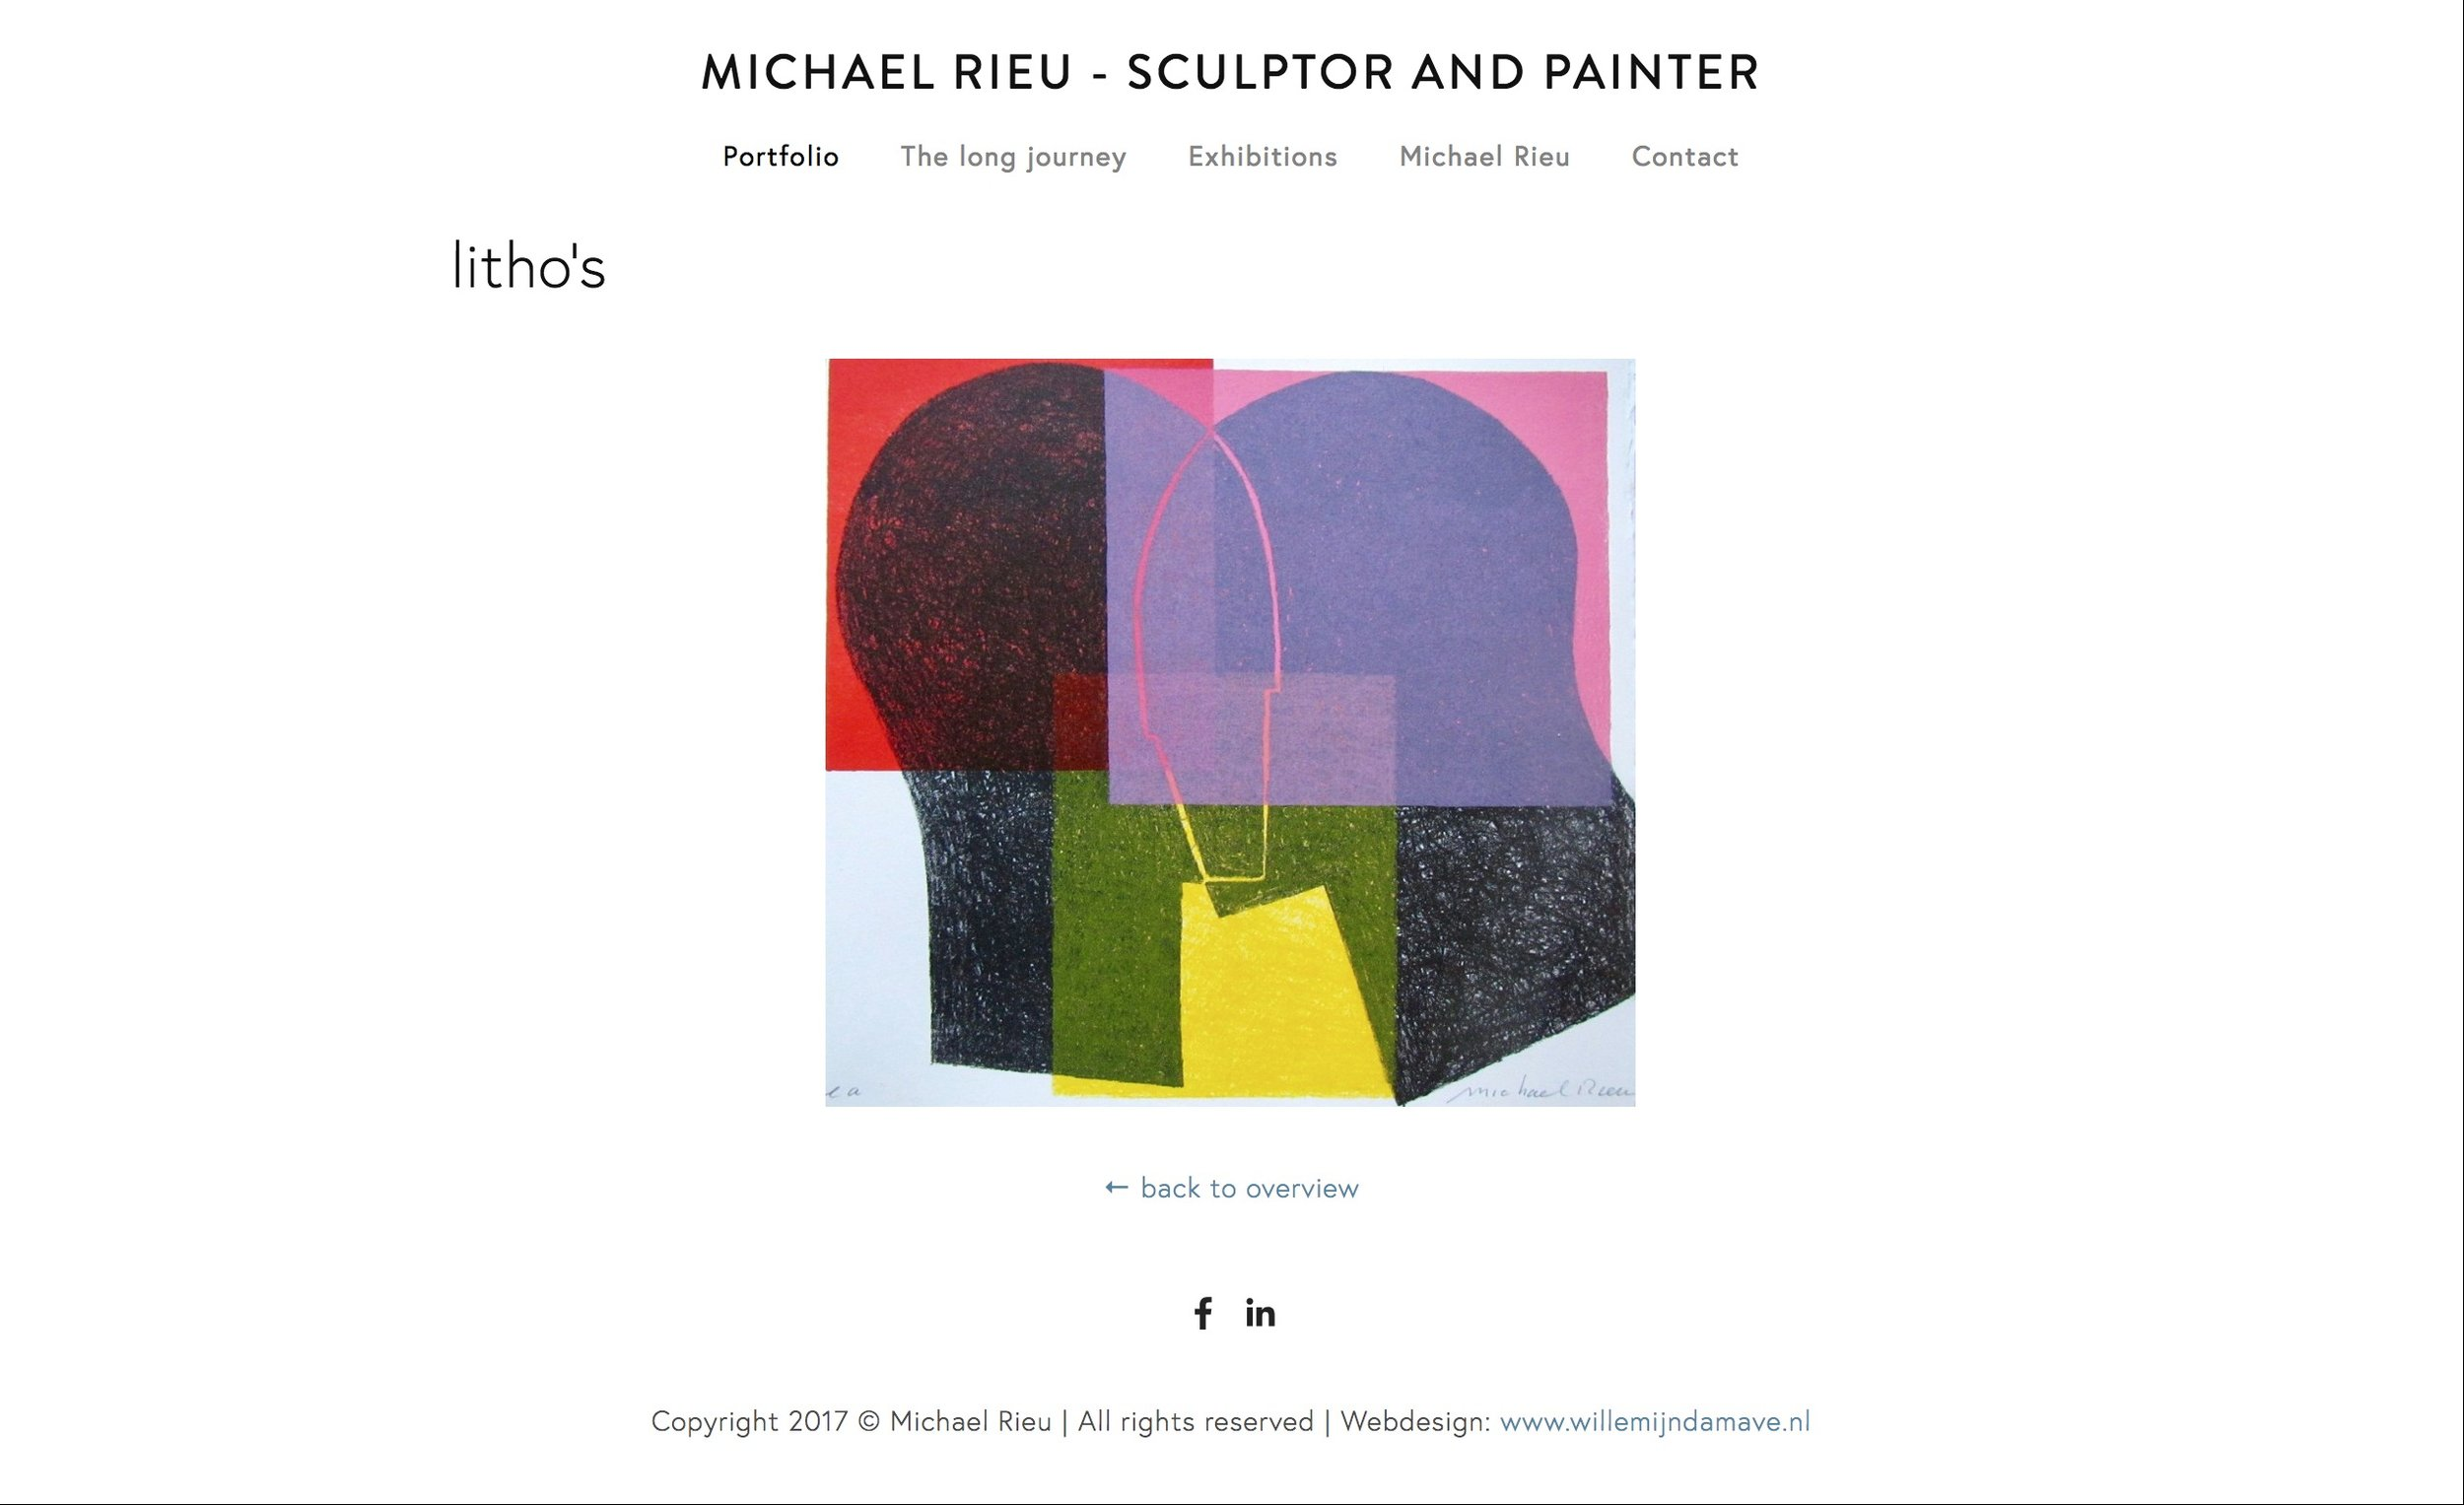 FireShot Capture 010 - litho's — MICHAEL RIEU - sculptor an_ - https___www.michaelrieu.com_new-page_.jpg